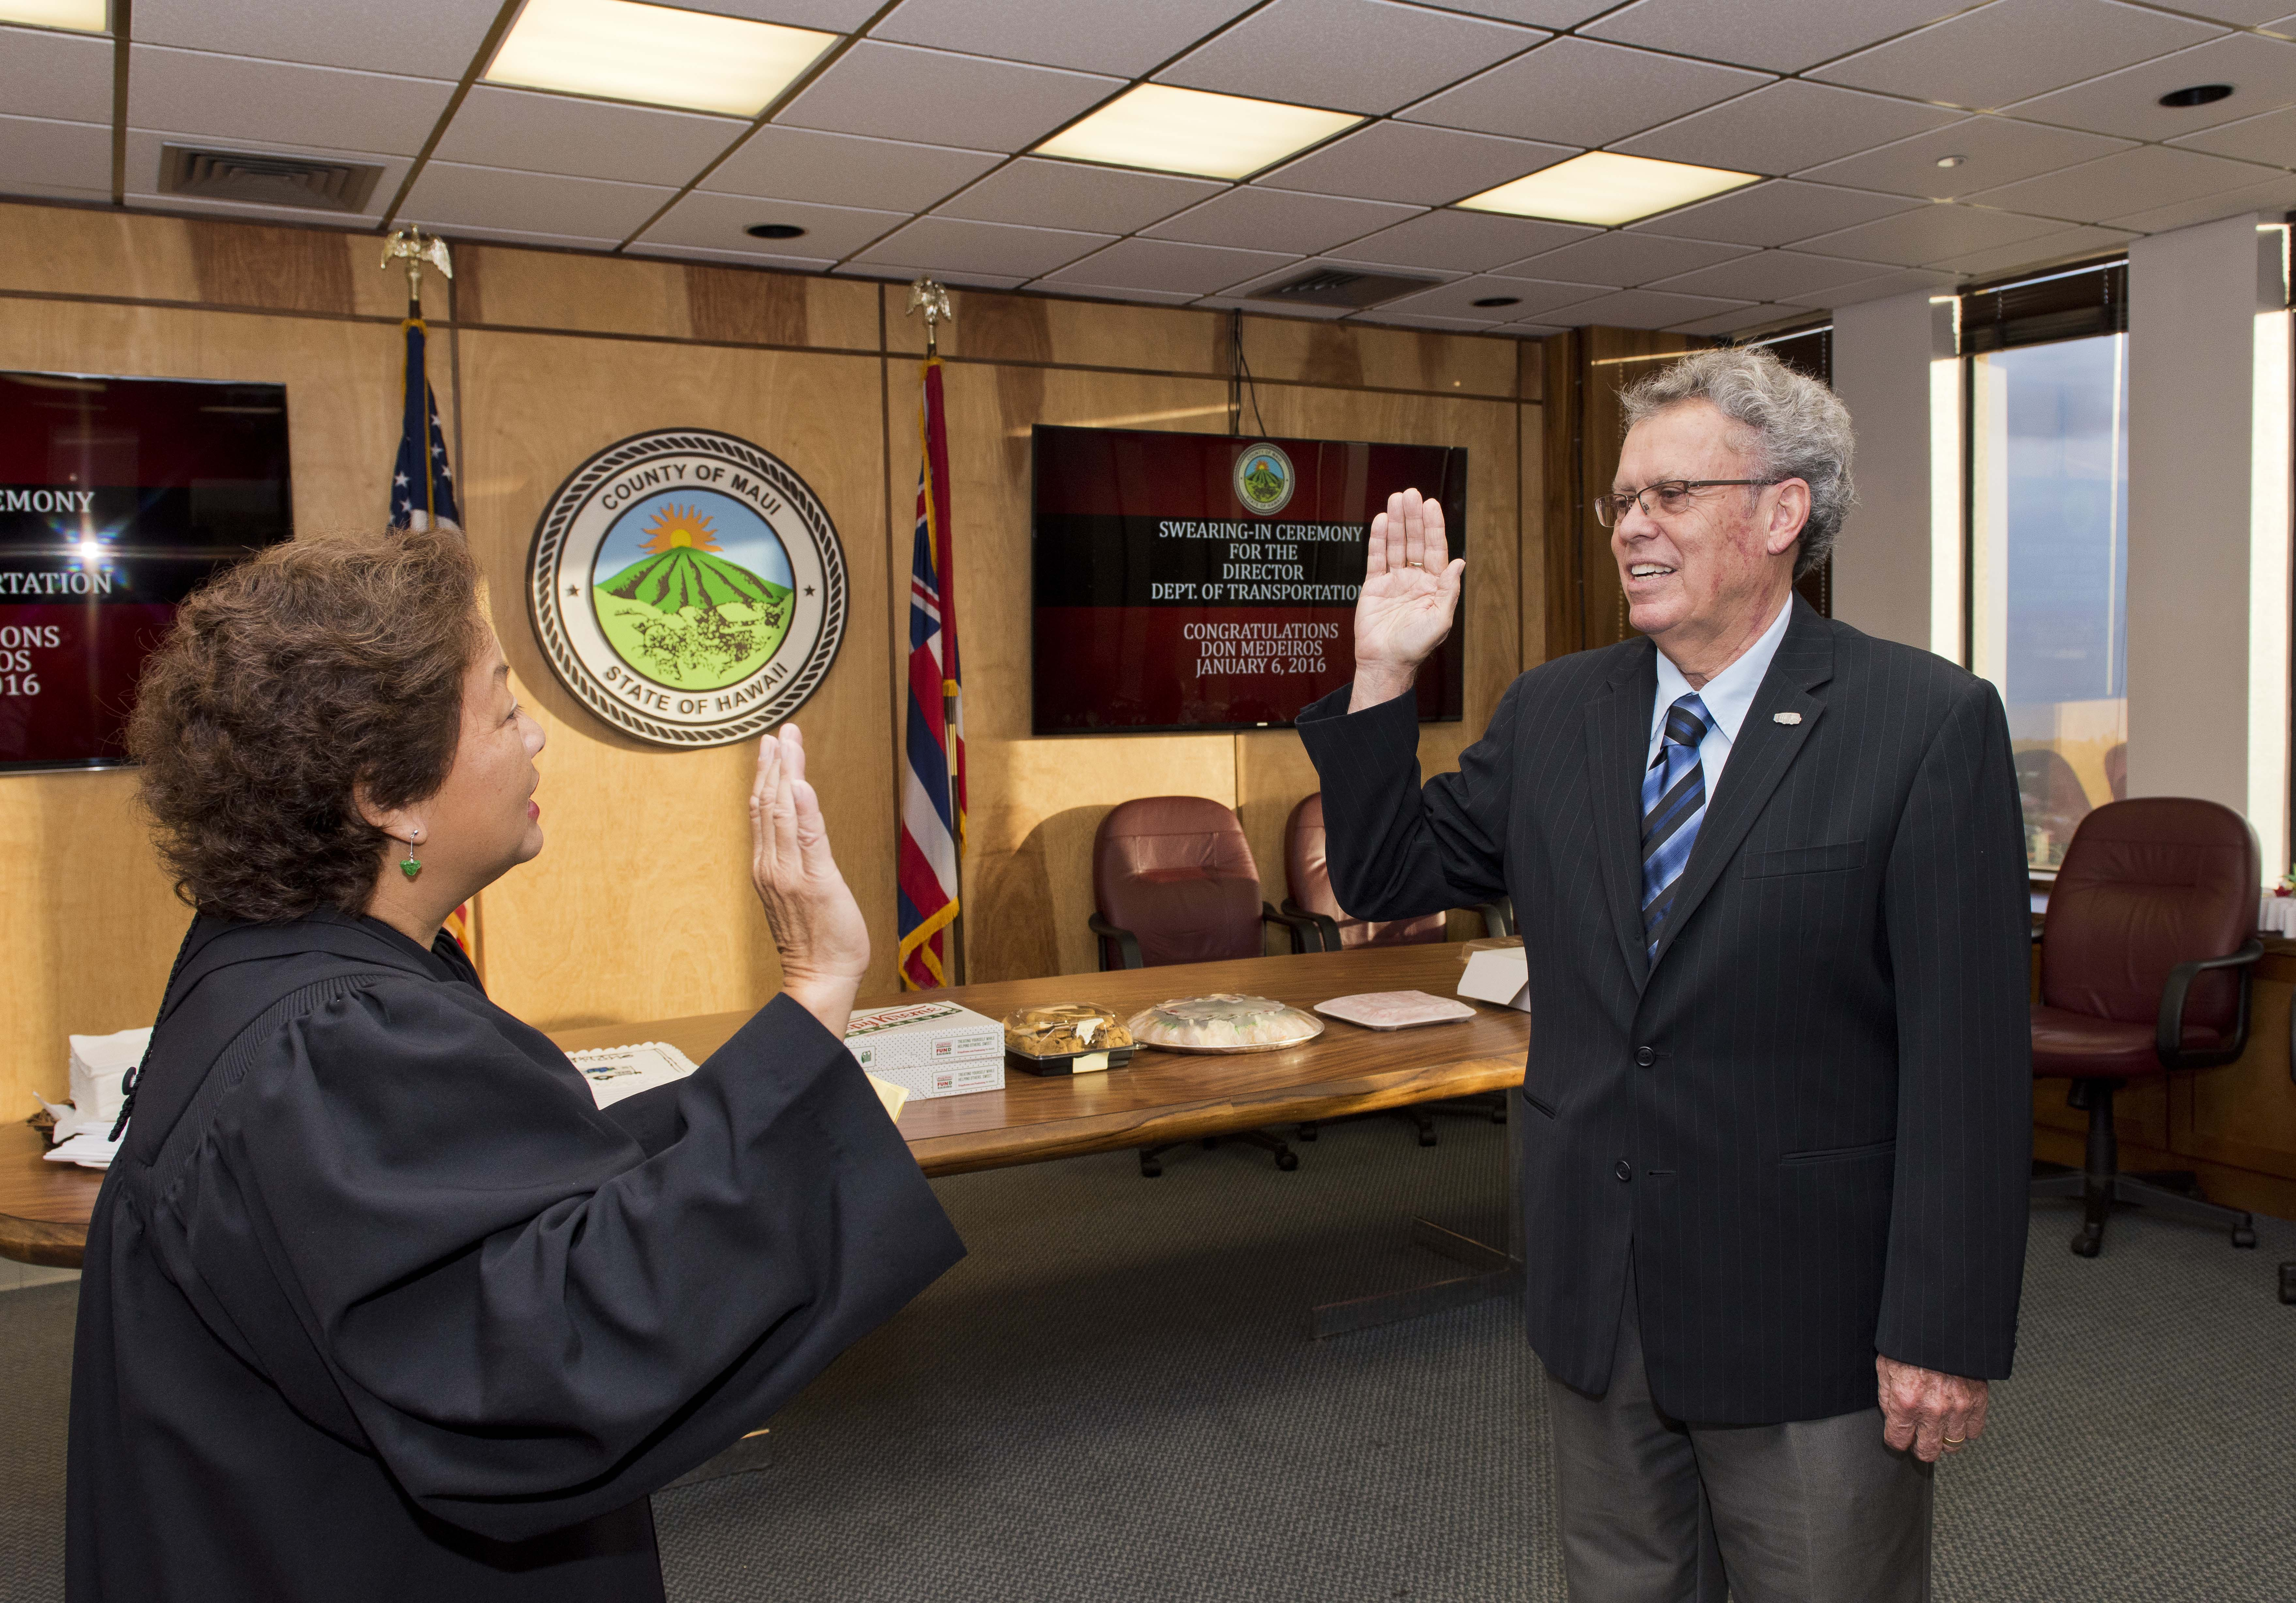 Judge Rhonda Loo swearing-in of the new Director of Transportation Don Medeiros.Photo: County of Maui/RYAN PIROS